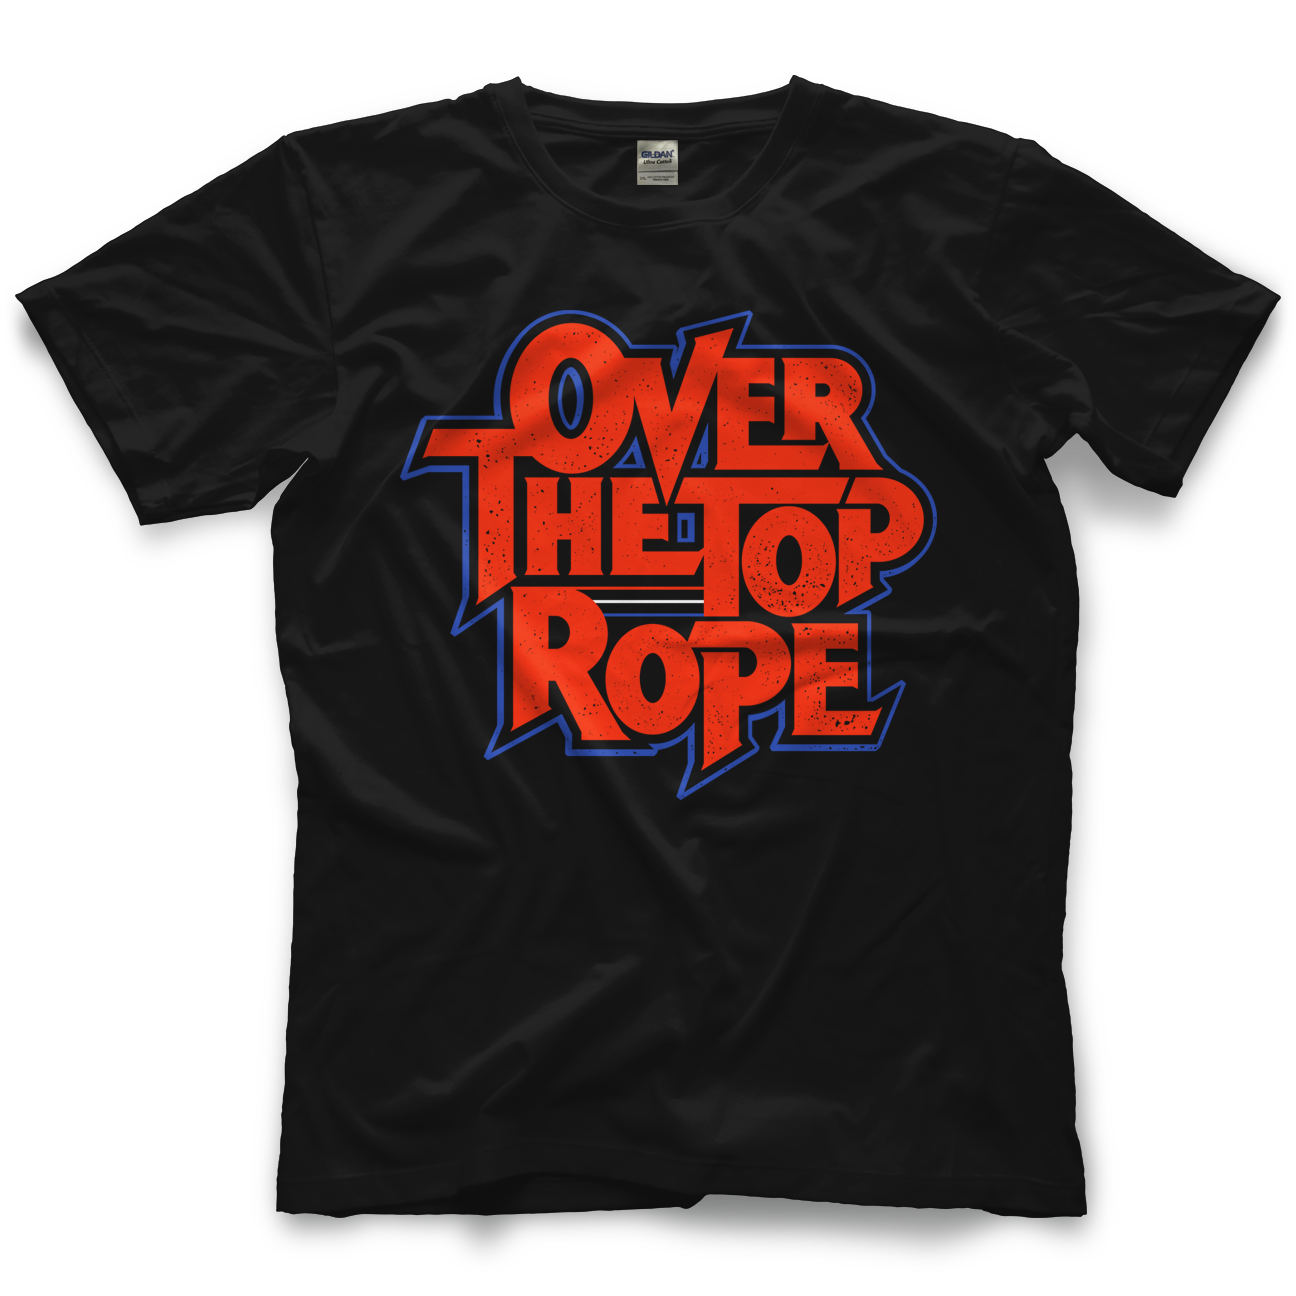 Over the Top Rope T-shirt